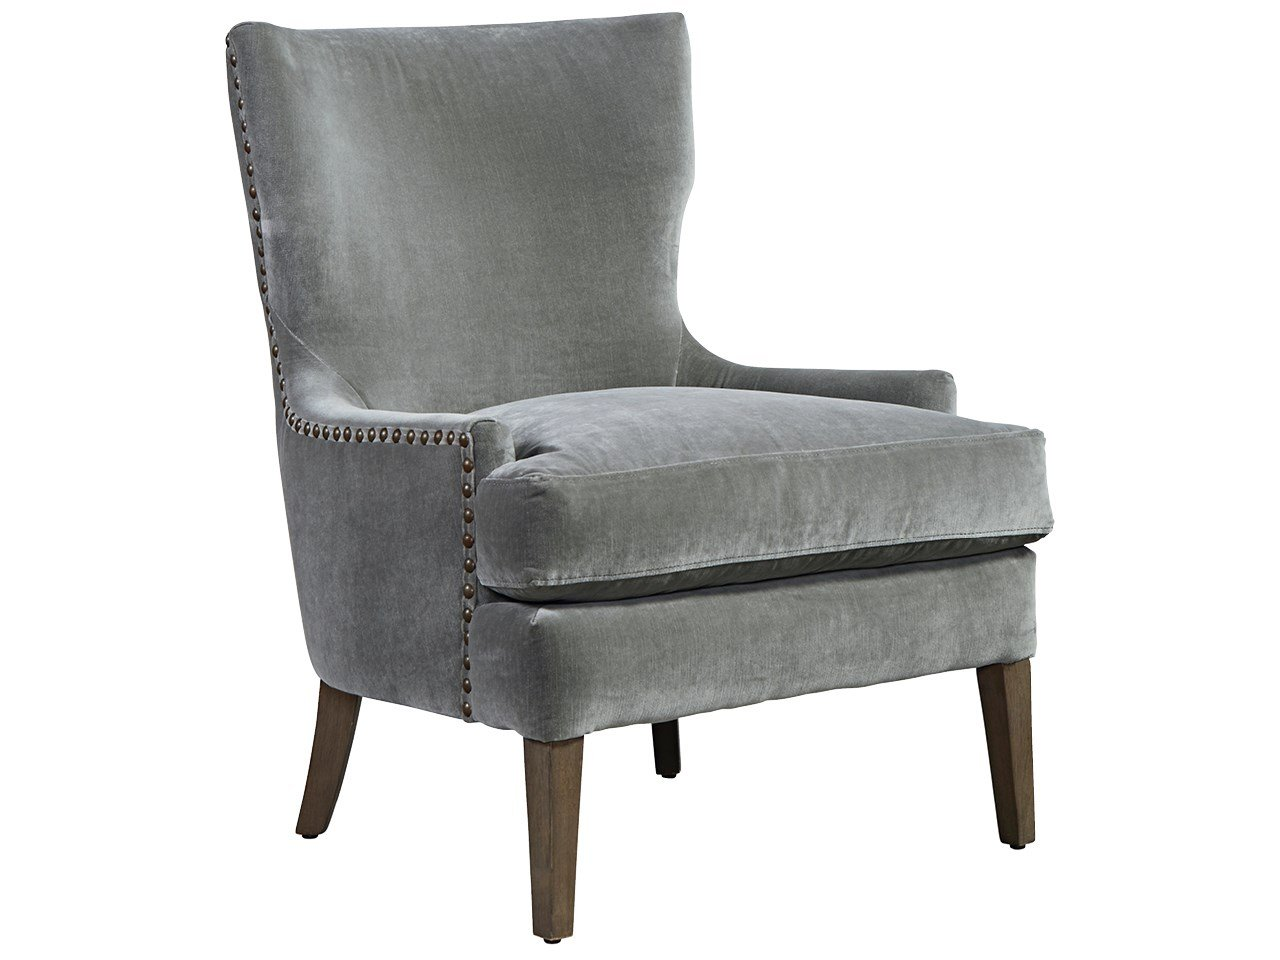 Aubrey Accent Chair - Special Order